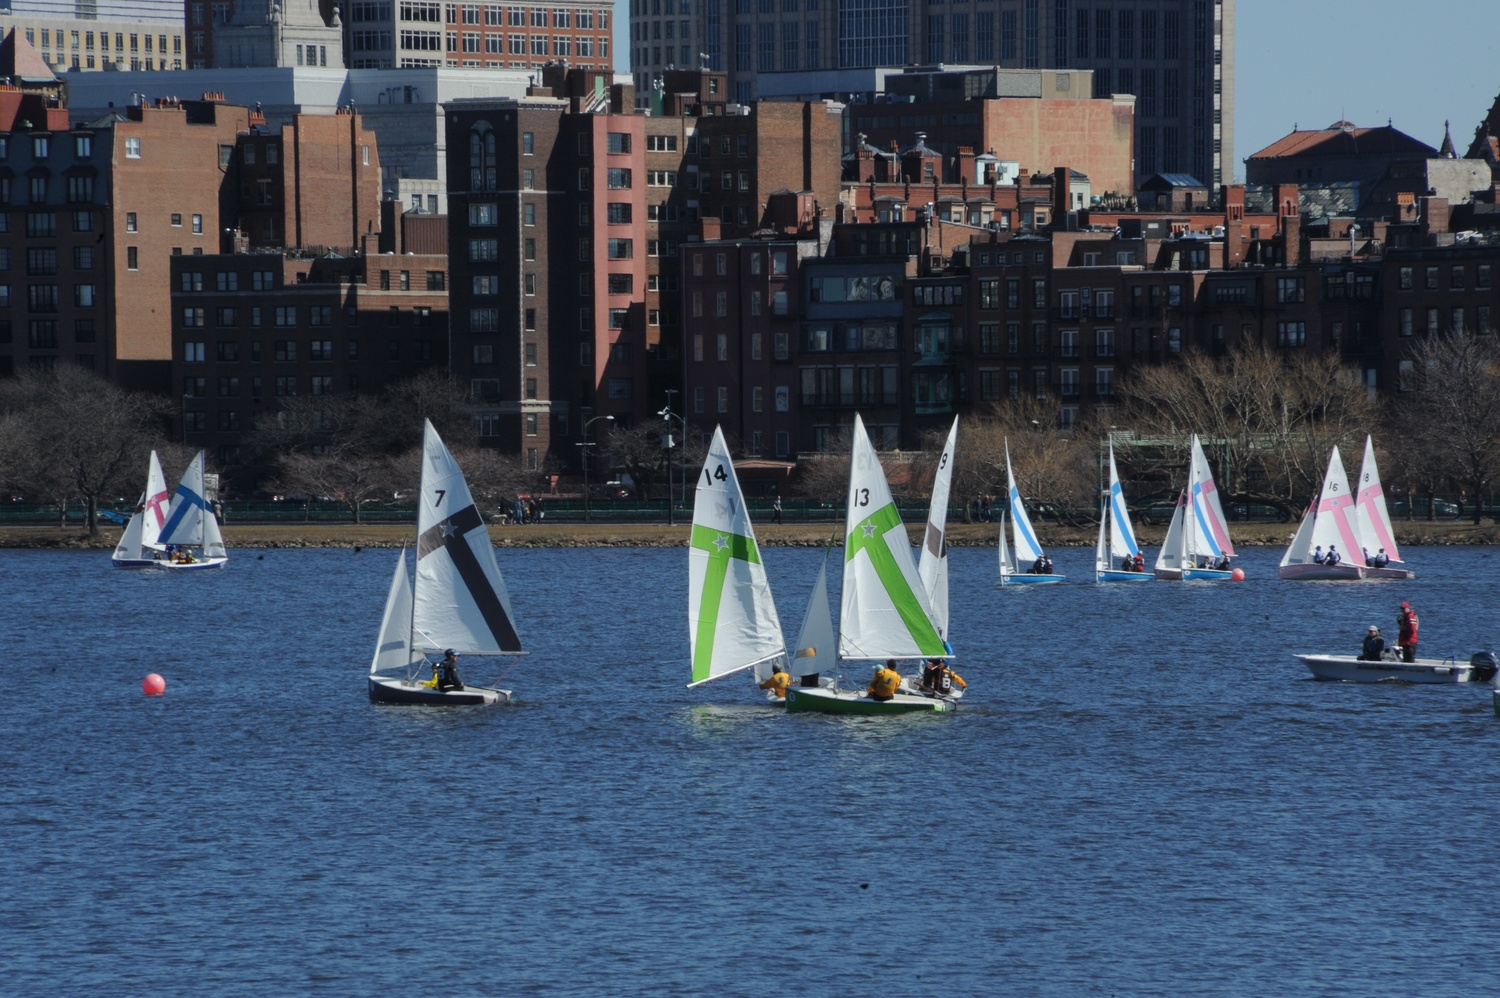 This past weekend, the men's sailing team finished in second place at the Captain Hurst Bowl, while the women's squad placed 11th at the Women's Showcase Finals.